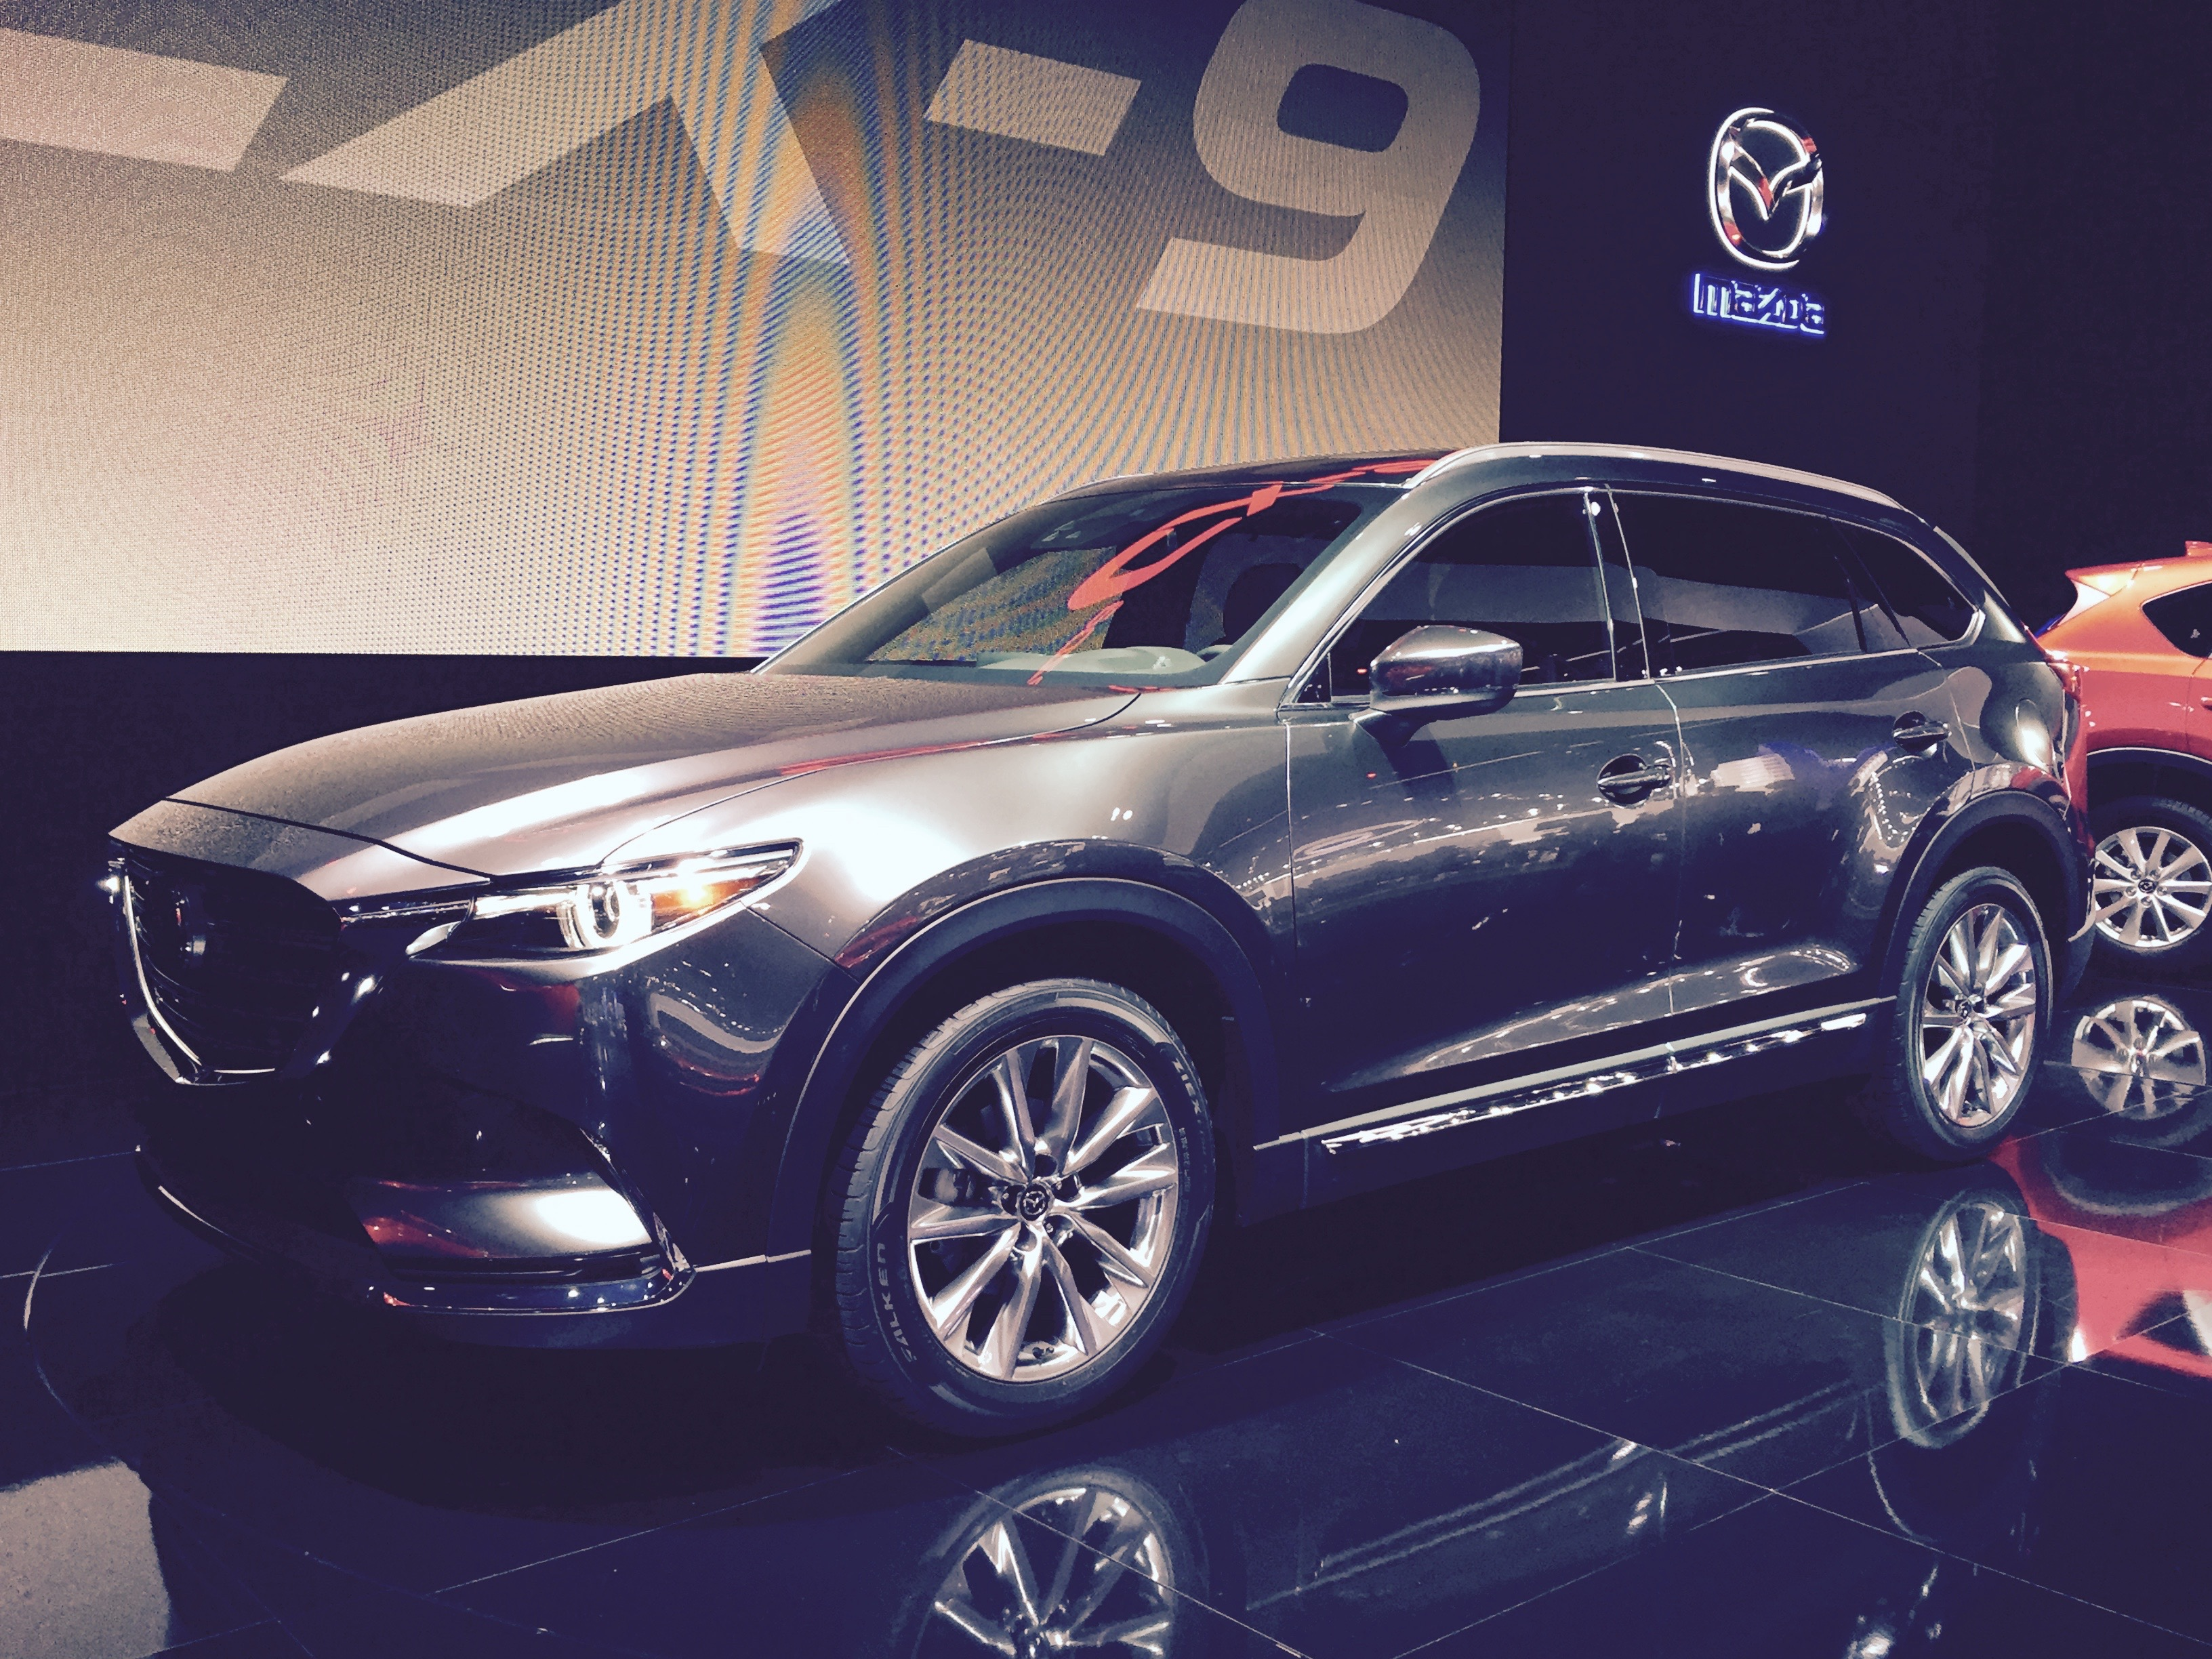 2016 Mazda CX-9 Video Preview